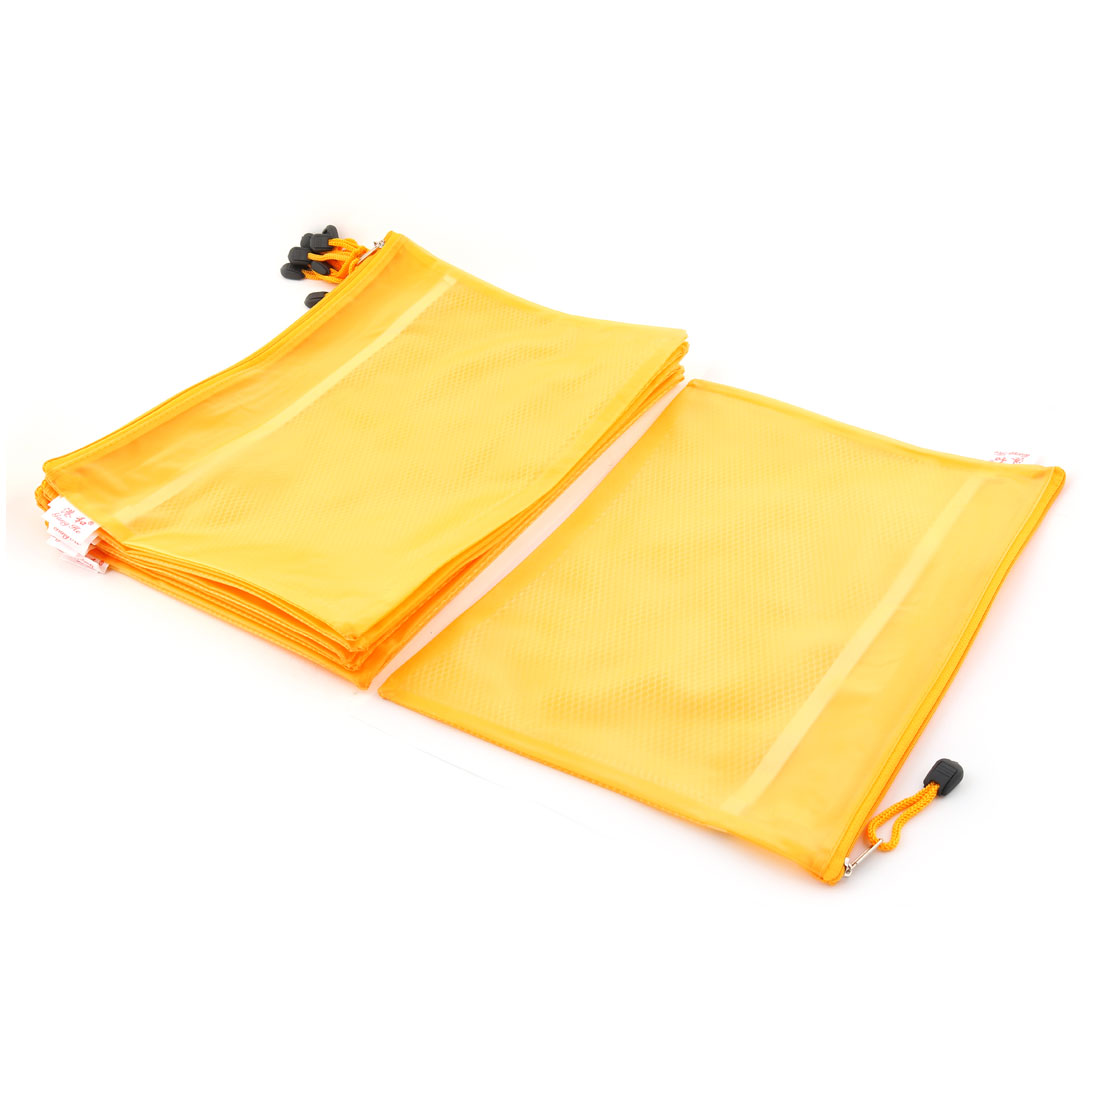 Office School Nylon Double Layer Zippered A4 Size Paper Document File Storage Bag Yellow 10pcs